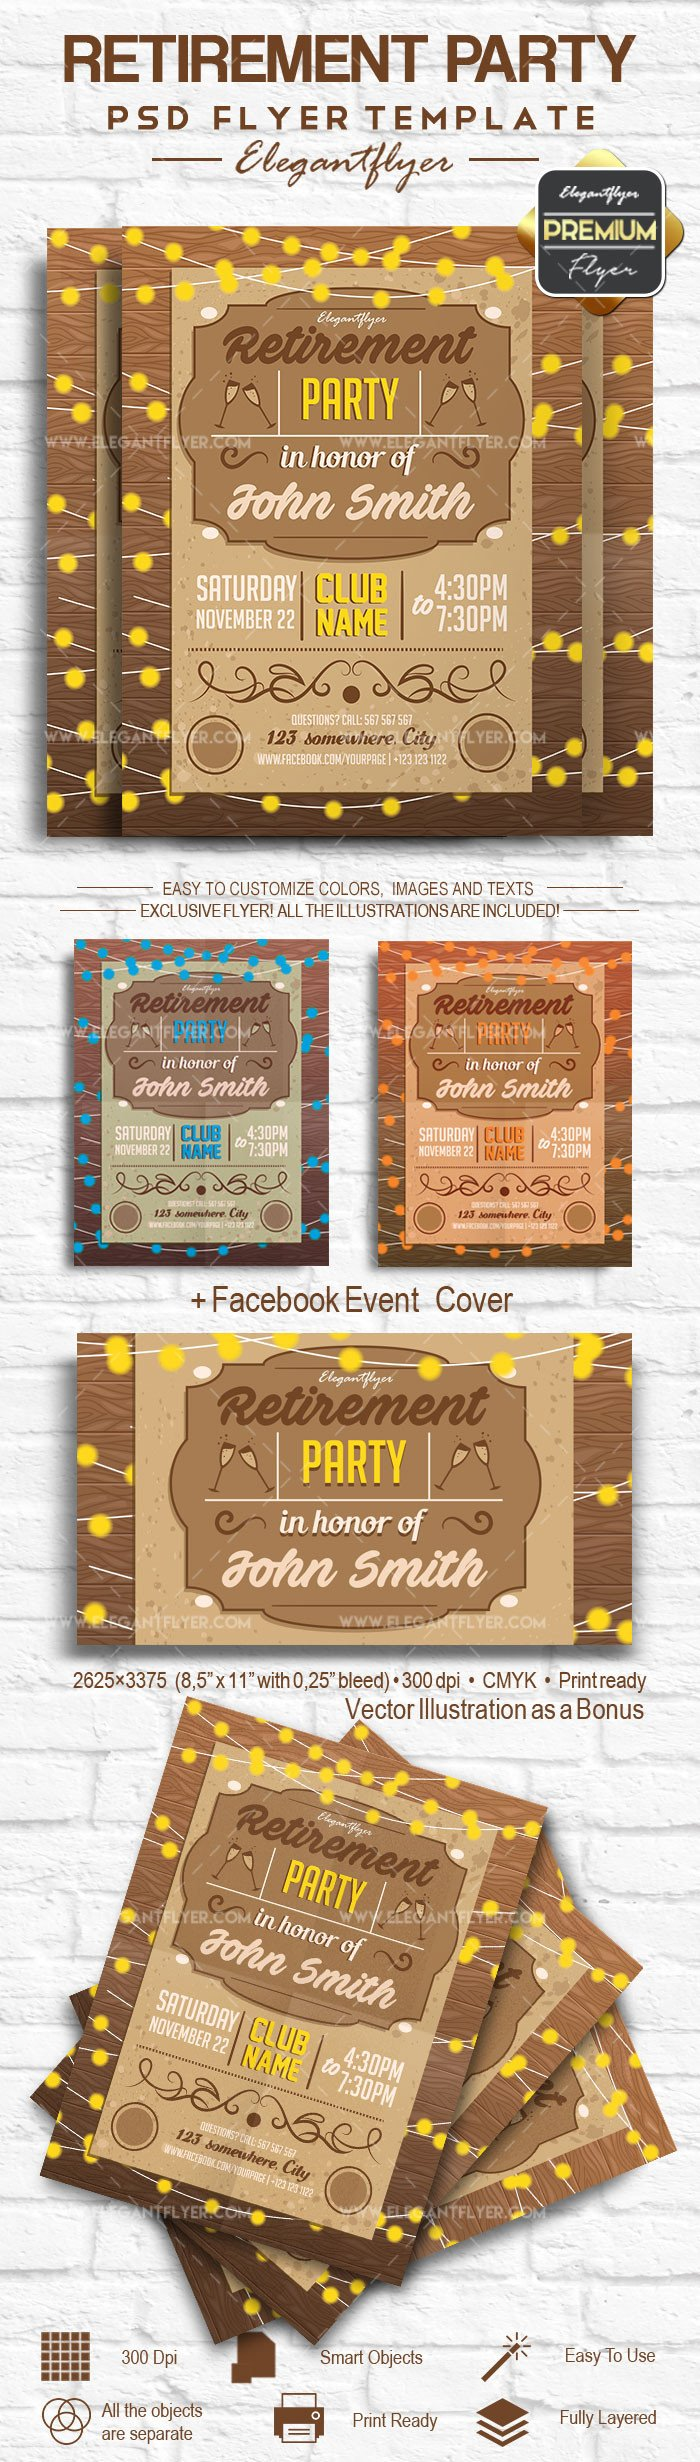 Retirement Party Flyer Templates Retirement Party – Flyer Psd Template – by Elegantflyer